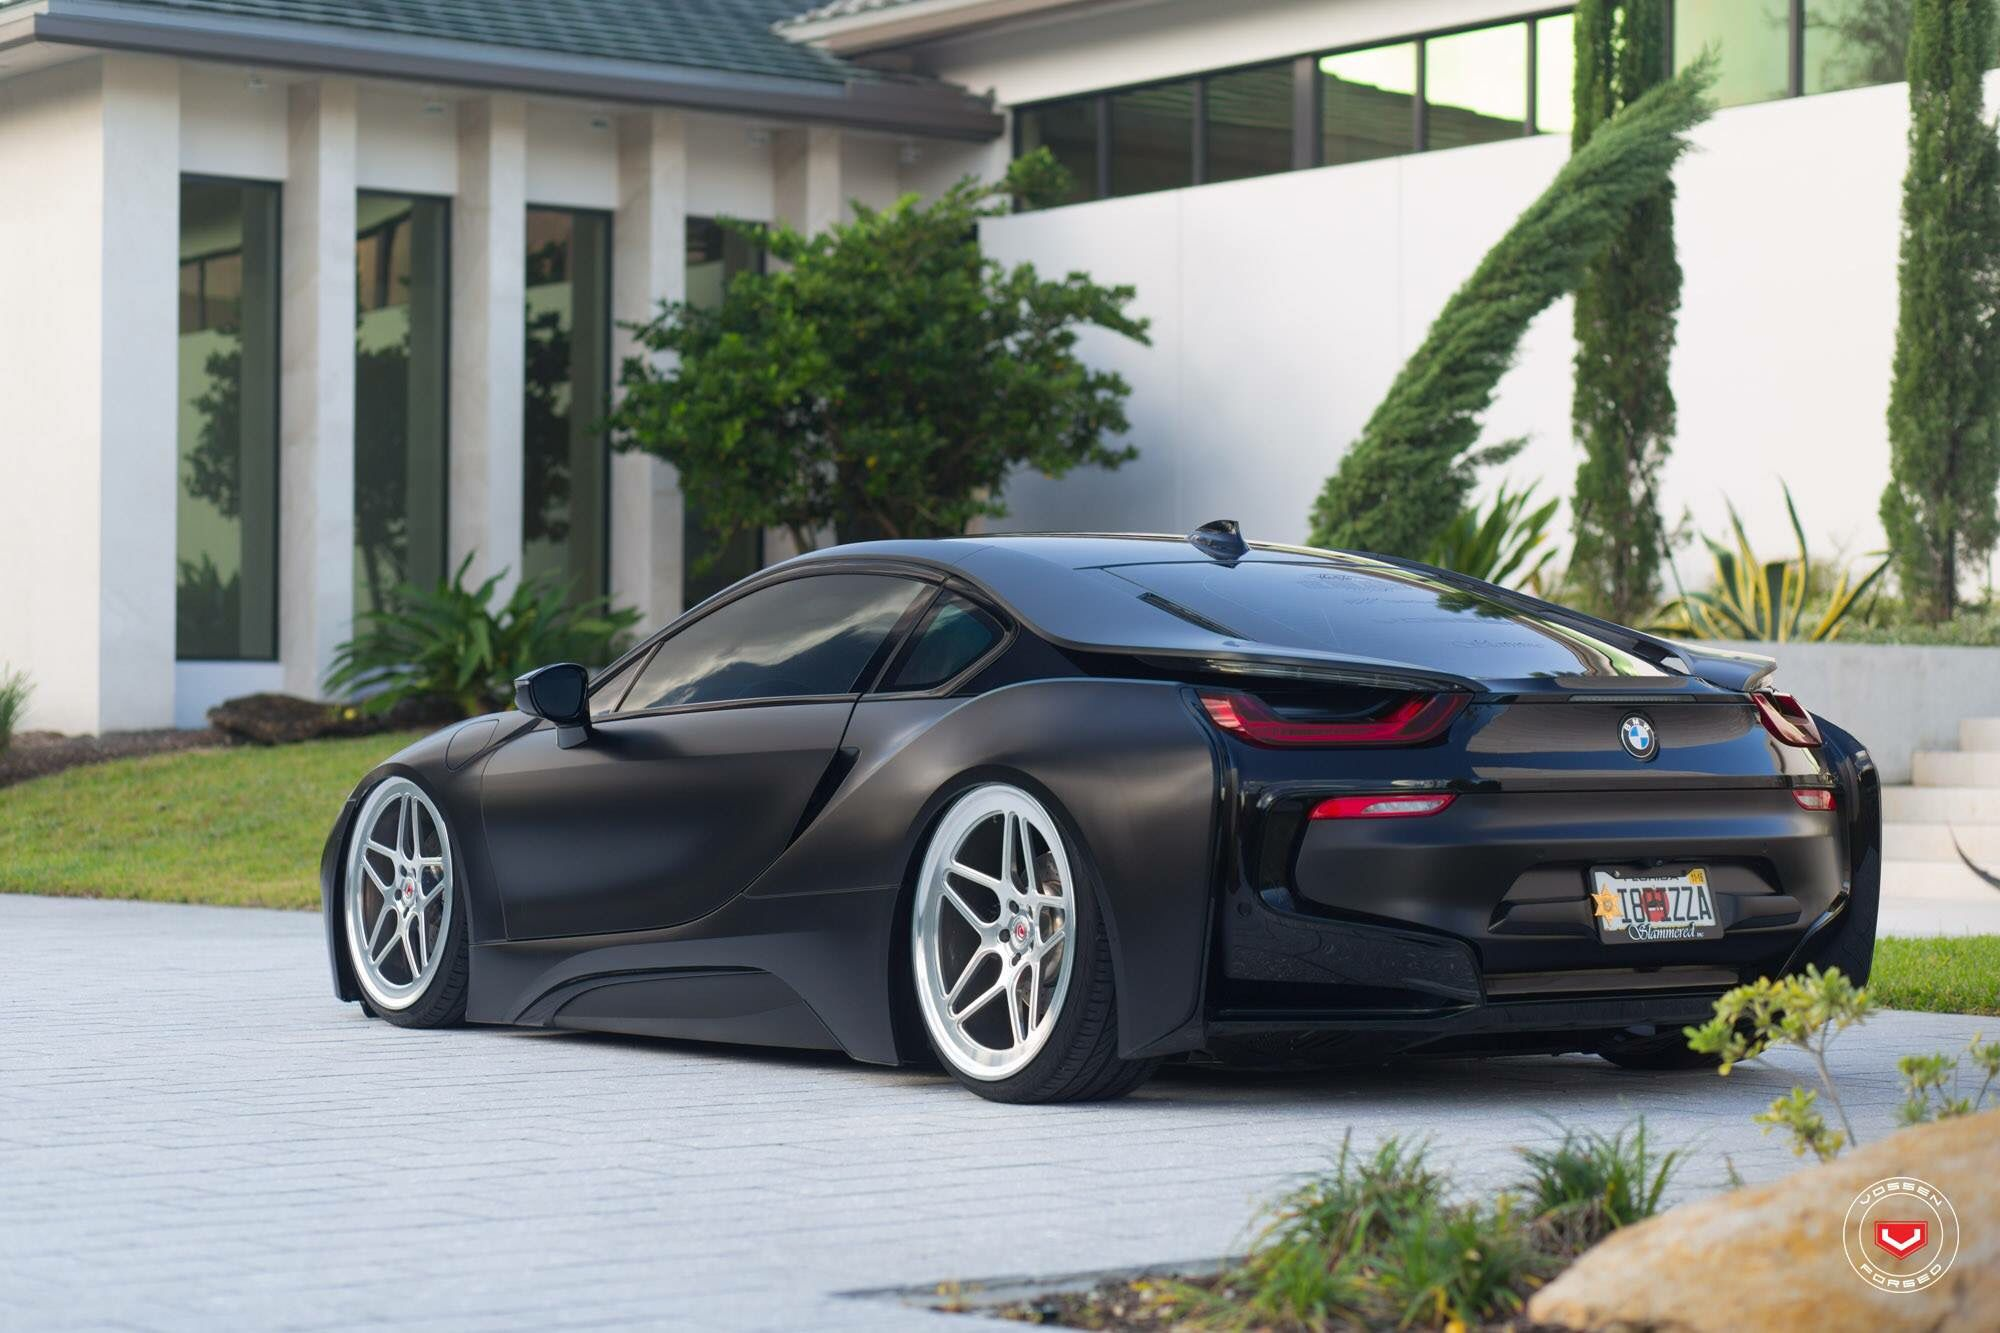 Pin By Justin Harris On All Things Automotive Bmw Bmw I8 Cars